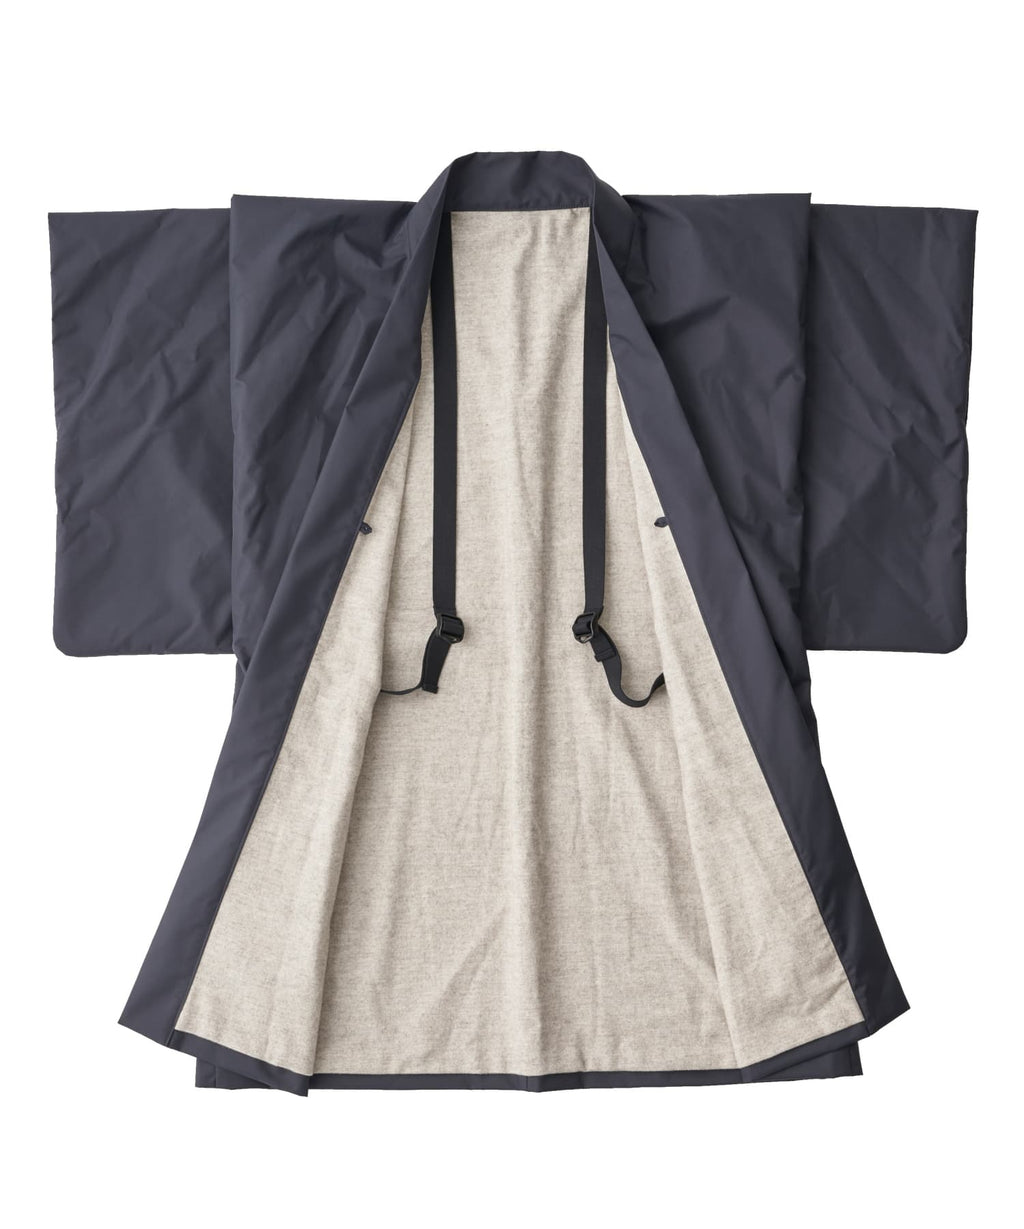 【PRE-ORDER】WAROBE / THREE LAYER HAORI TECH / BLACK